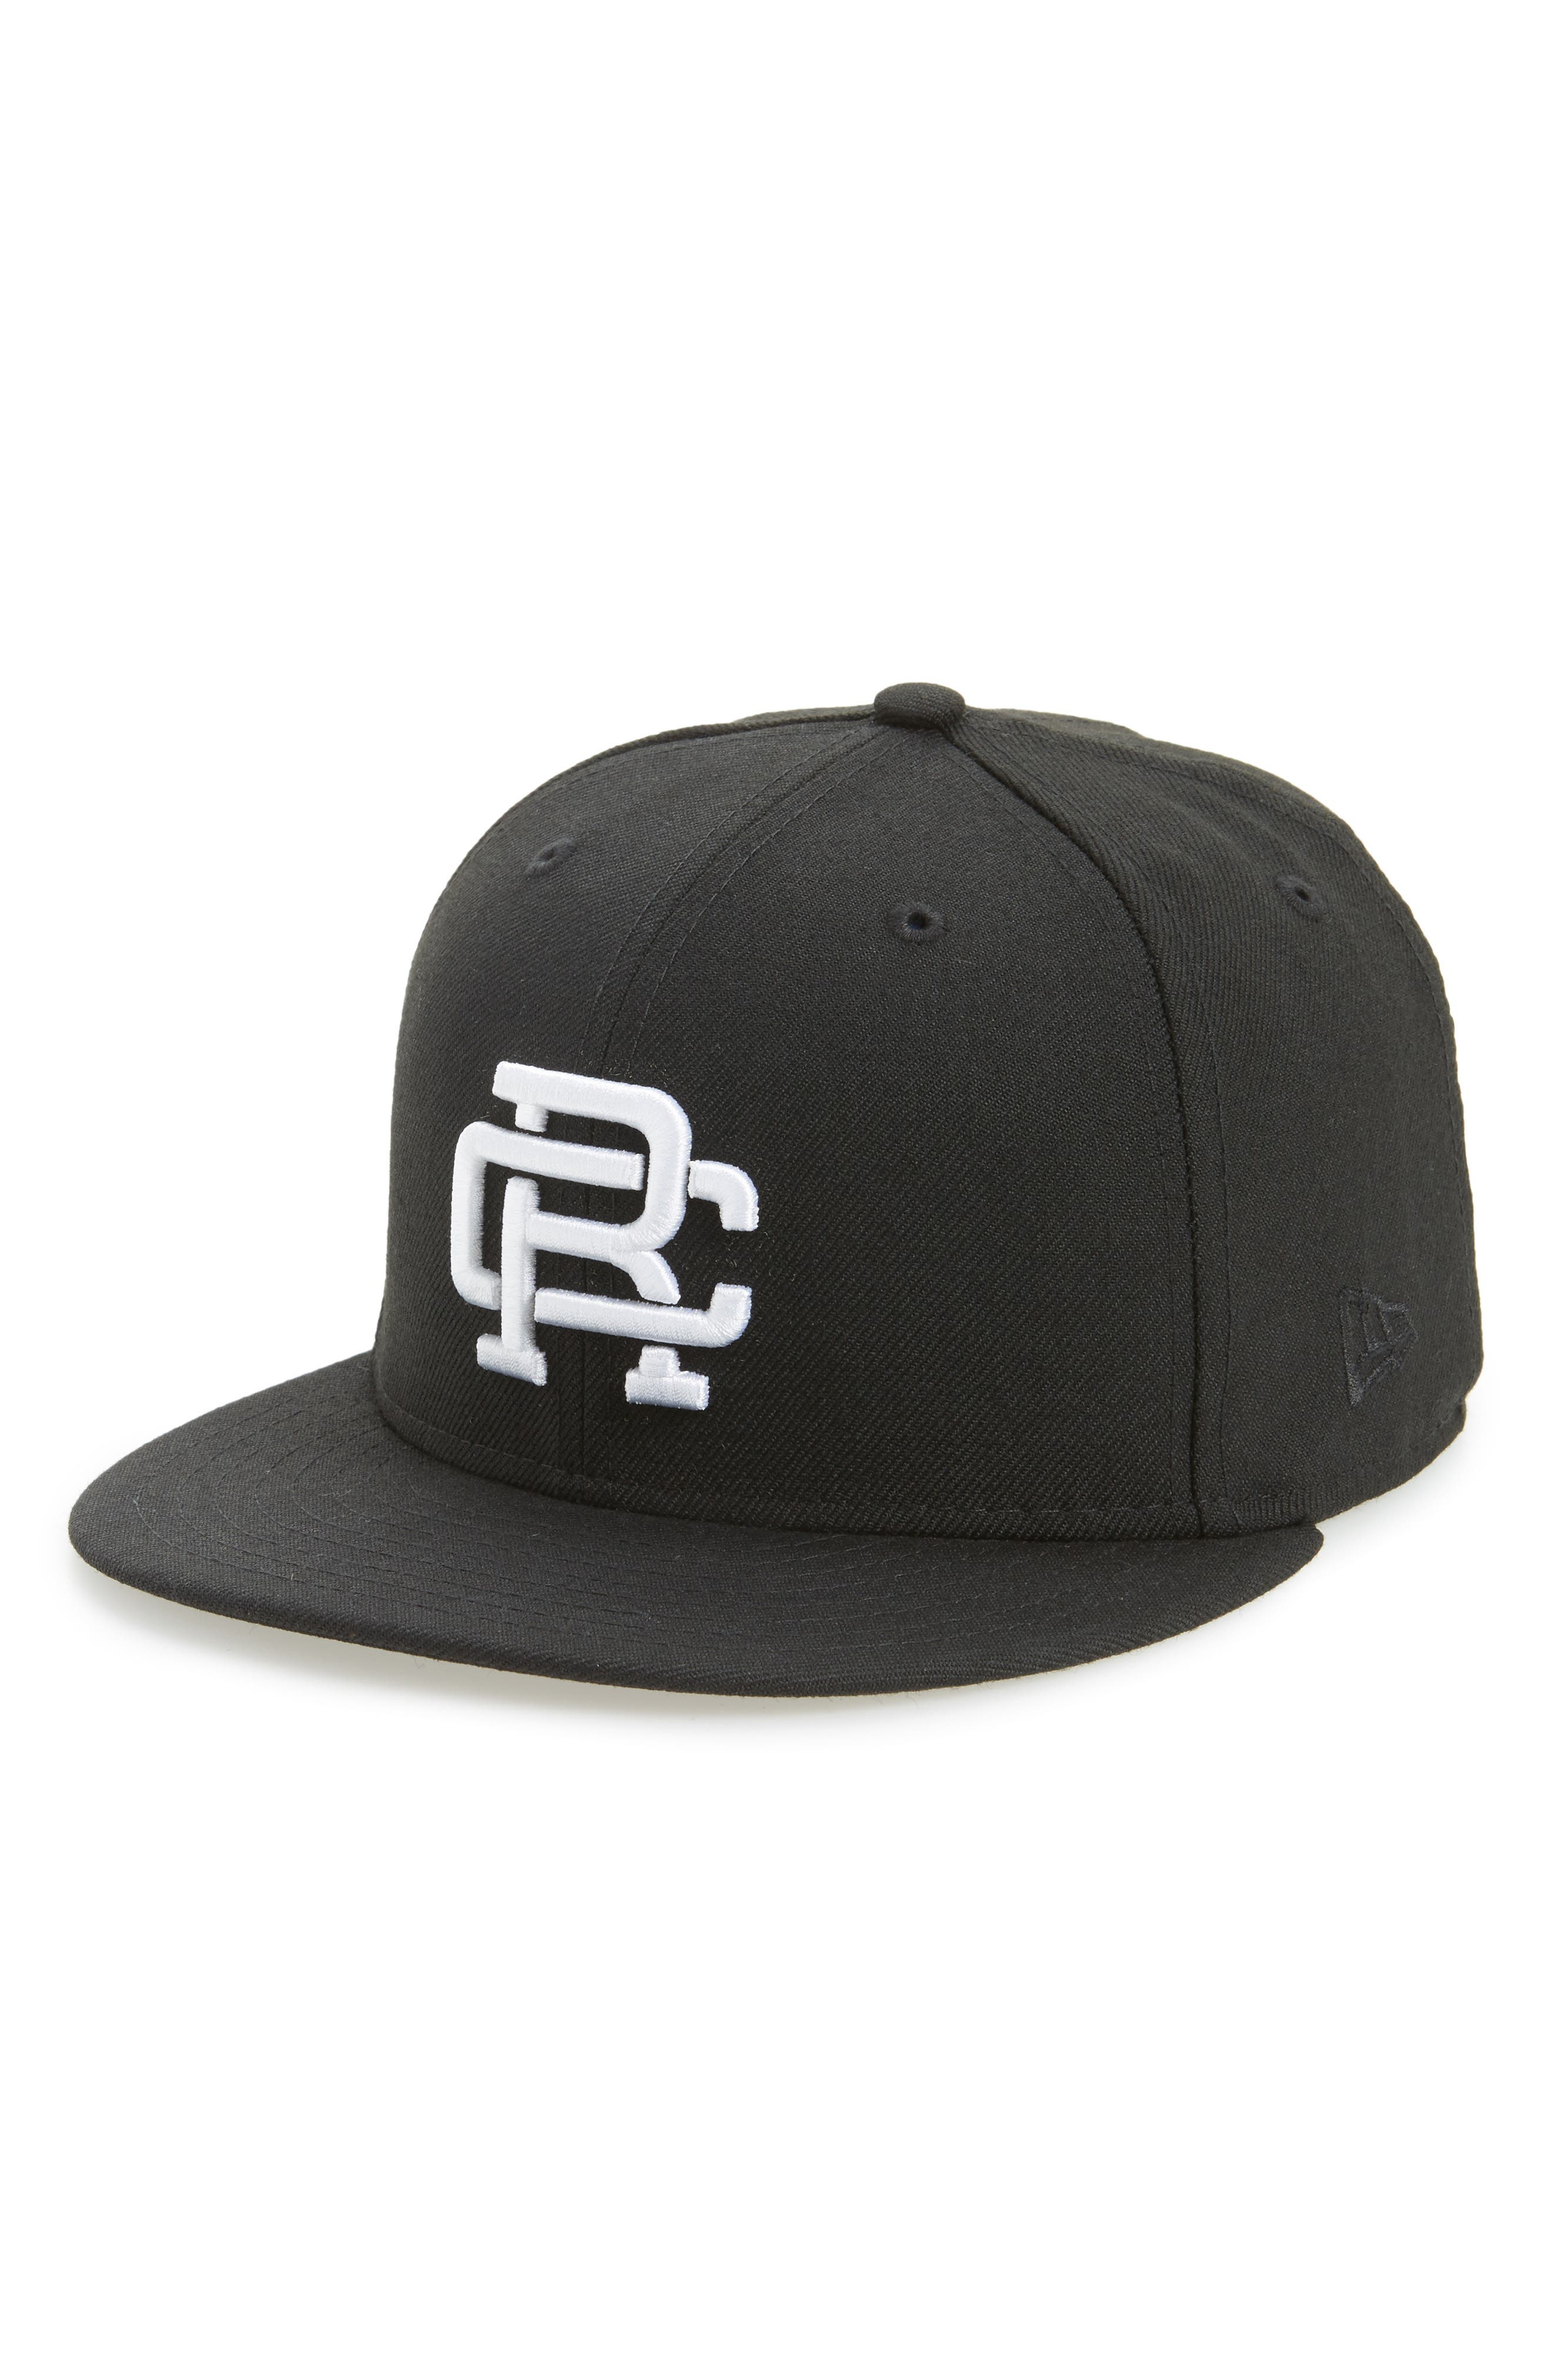 Main Image - Reigning Champ New Era Fitted Baseball Cap